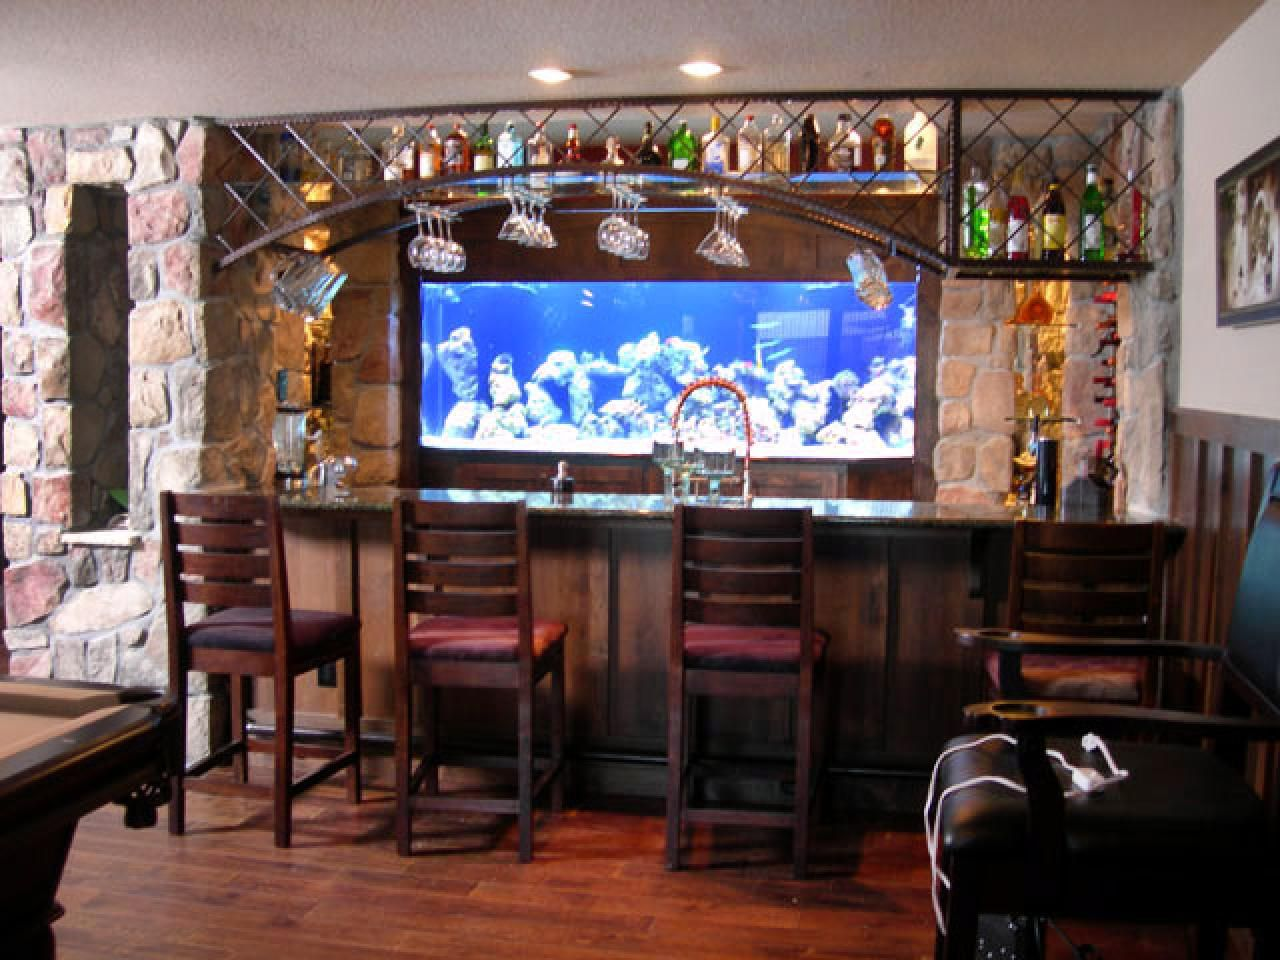 Home Bar Ideas 89 Design Options Hgtv Kitchen Design